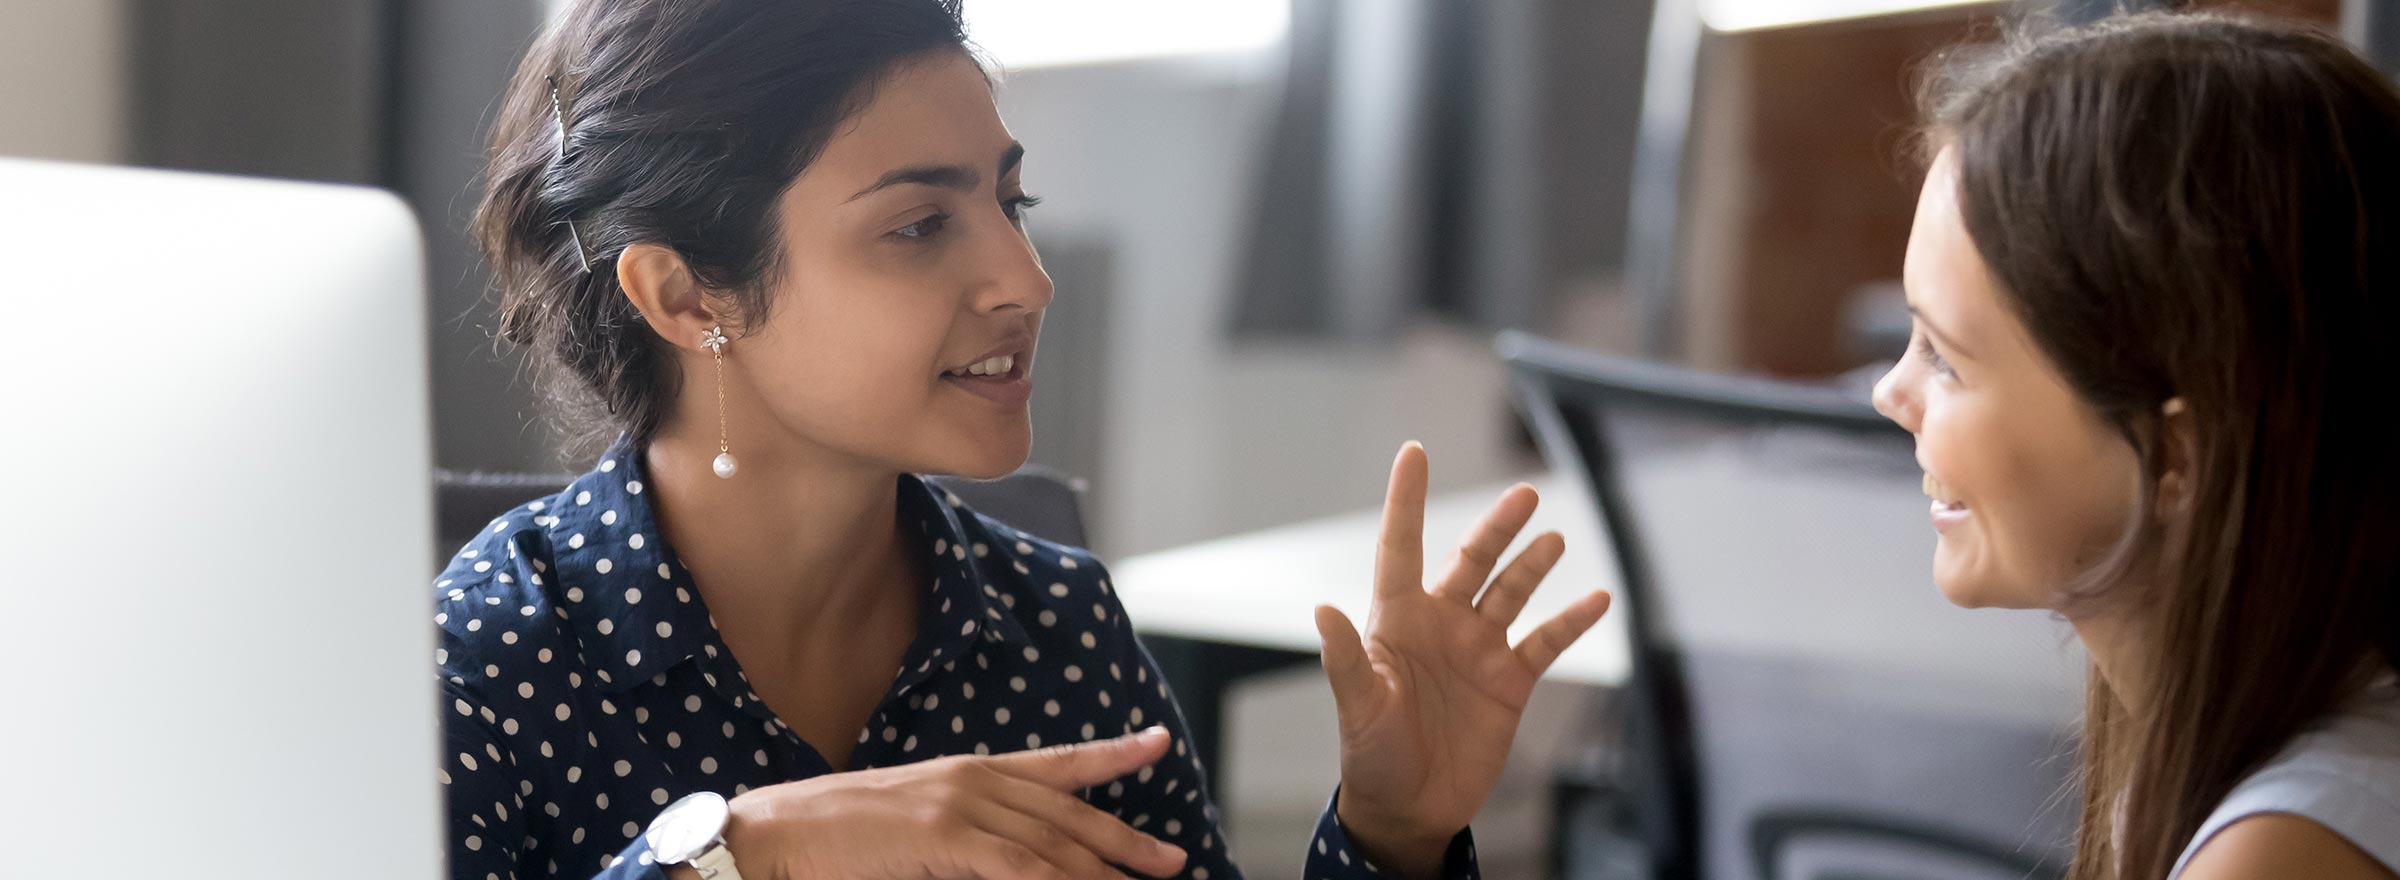 woman in workplace explaining something to another woman